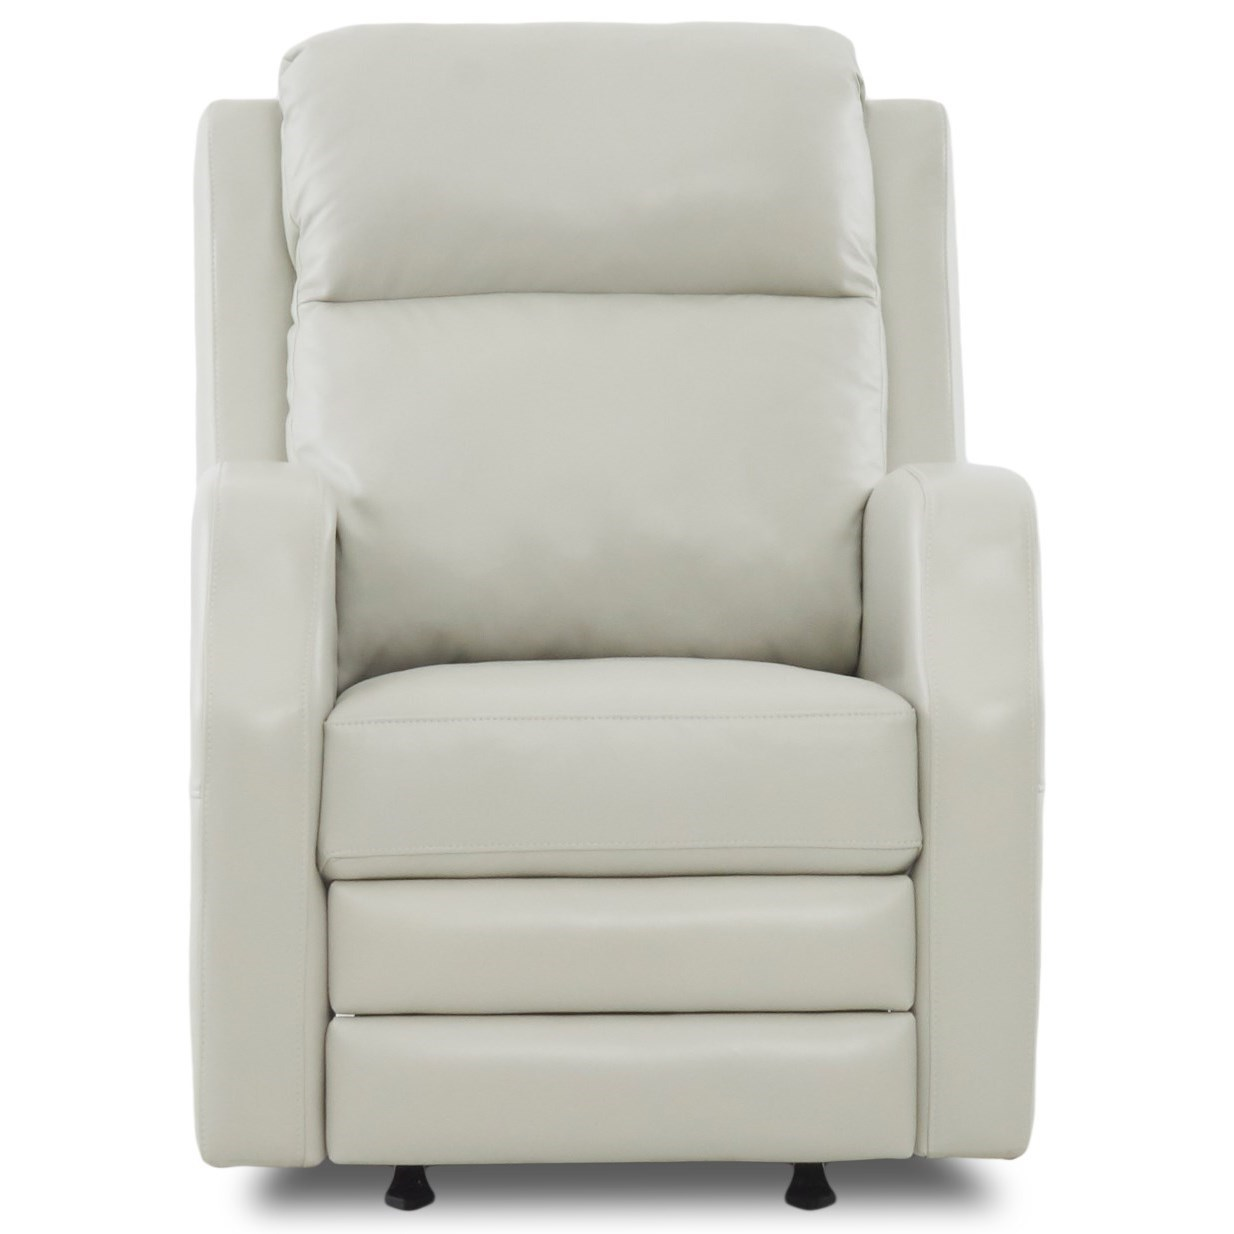 Power Rocking Reclining Chair with USB Charging Port